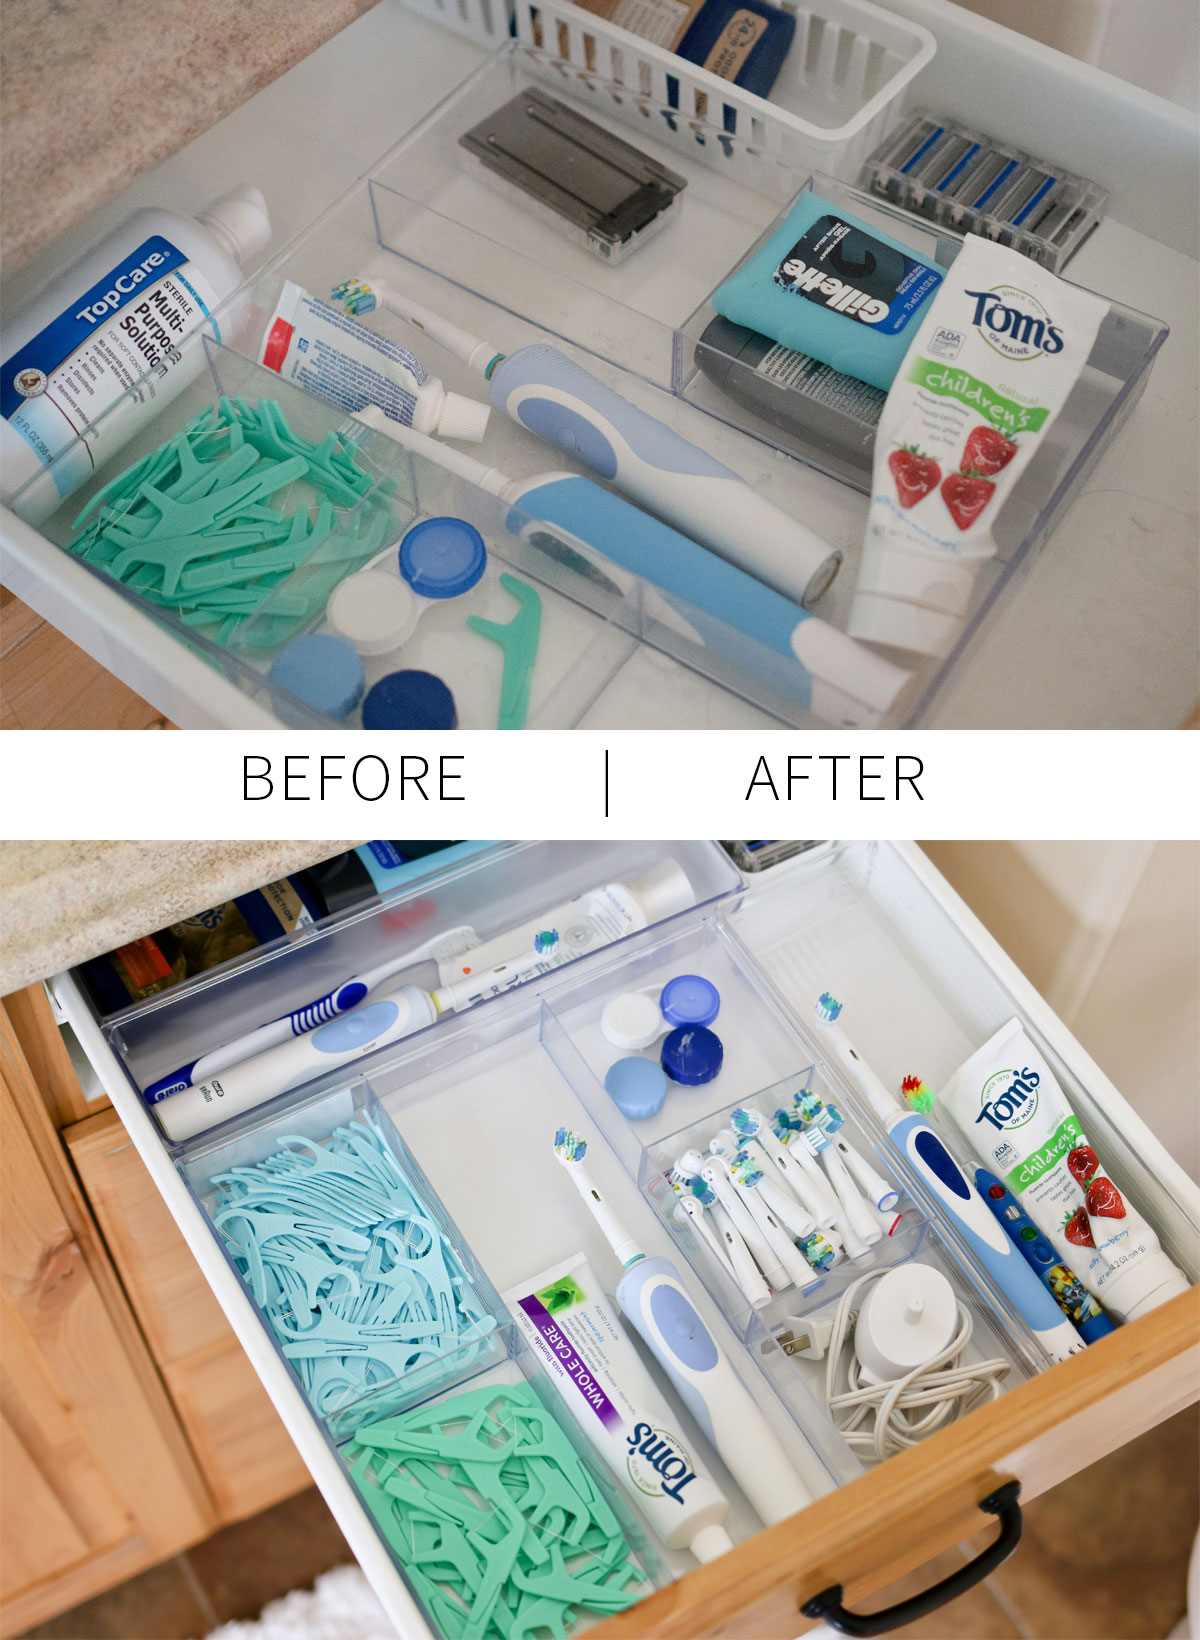 Dental needs and bathroom organization